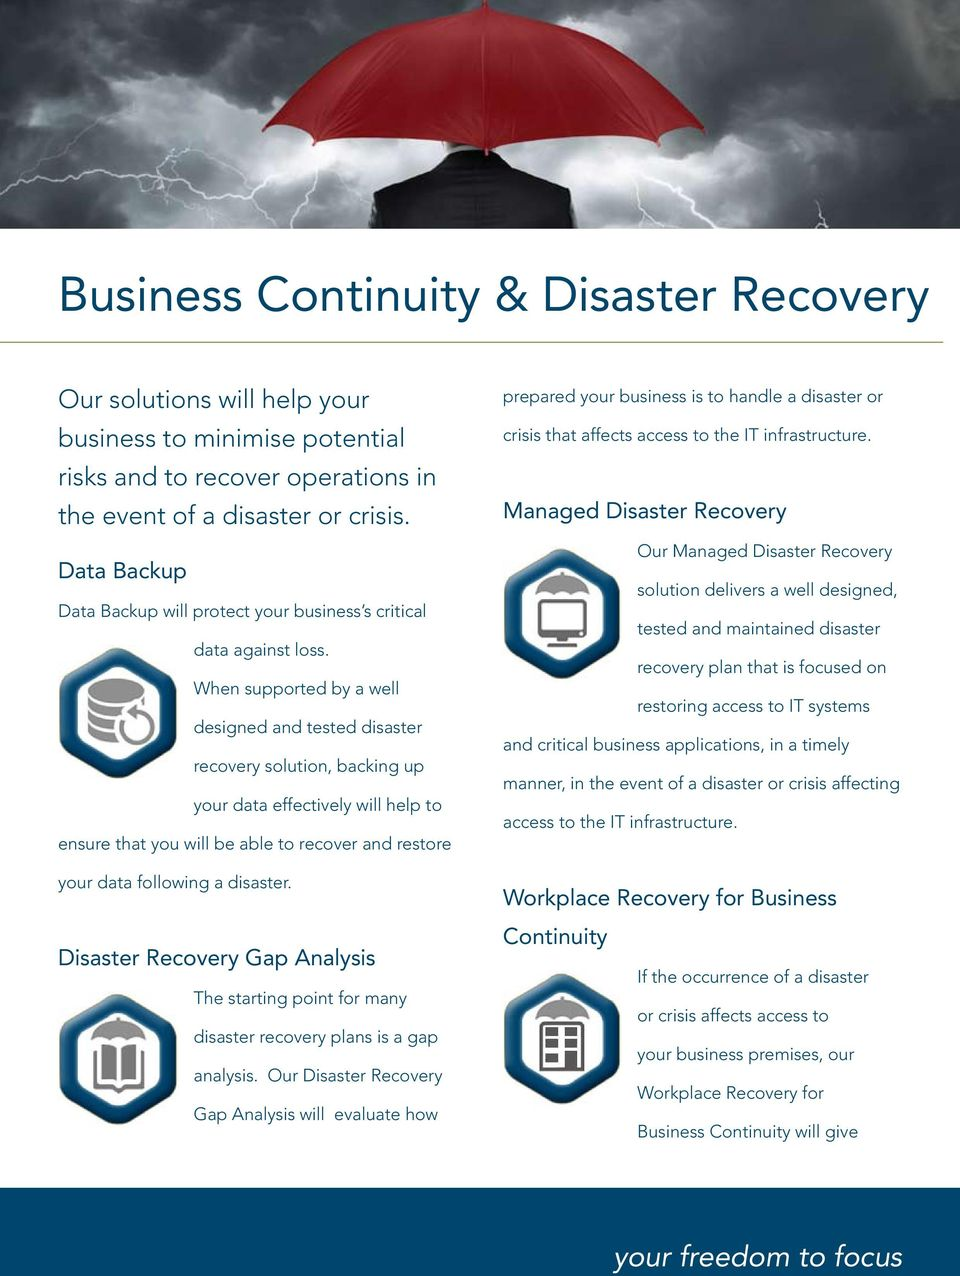 When supported by a well designed and tested disaster recovery solution, backing up your data effectively will help to ensure that you will be able to recover and restore your data following a